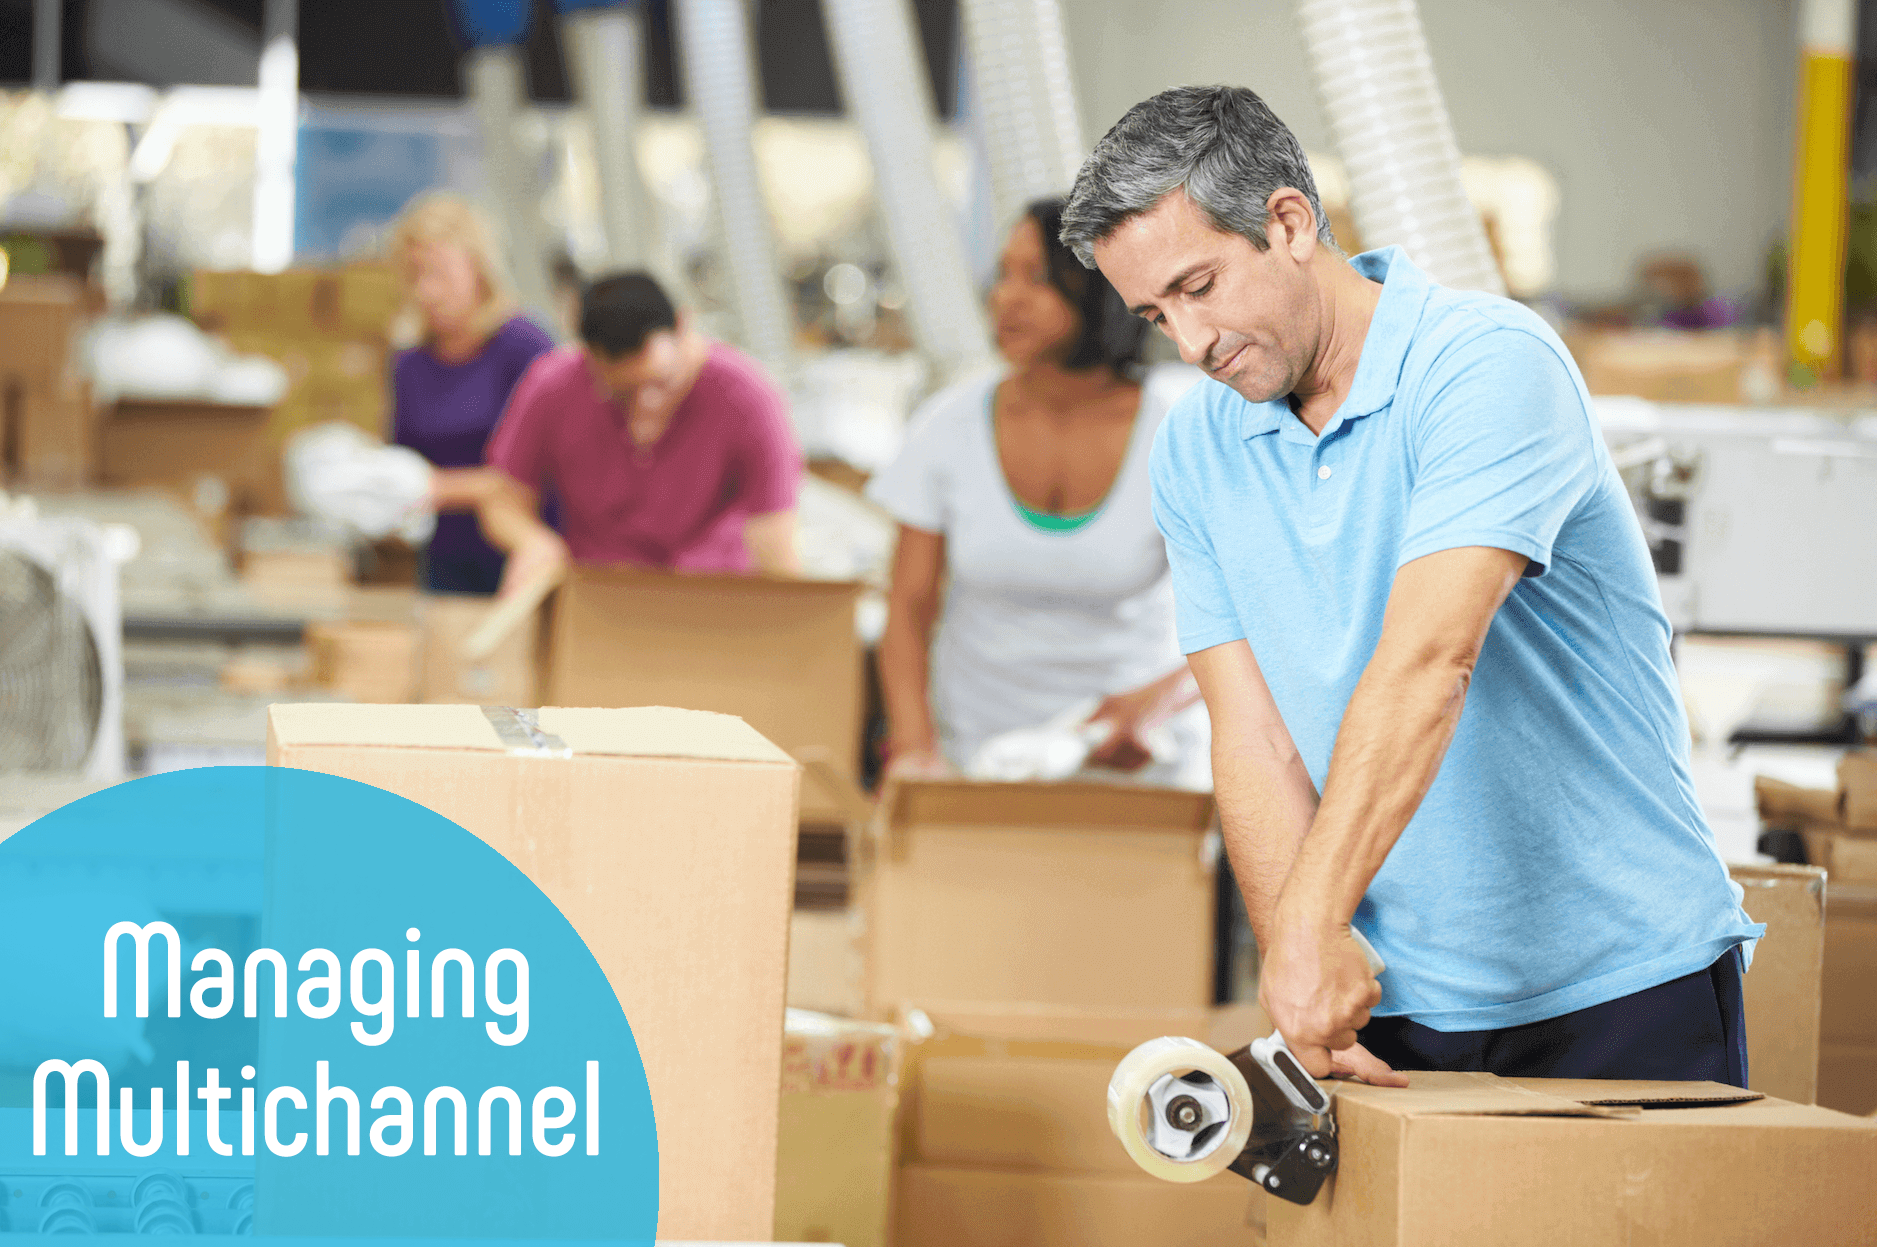 Improve Multichannel with Better Inventory Control